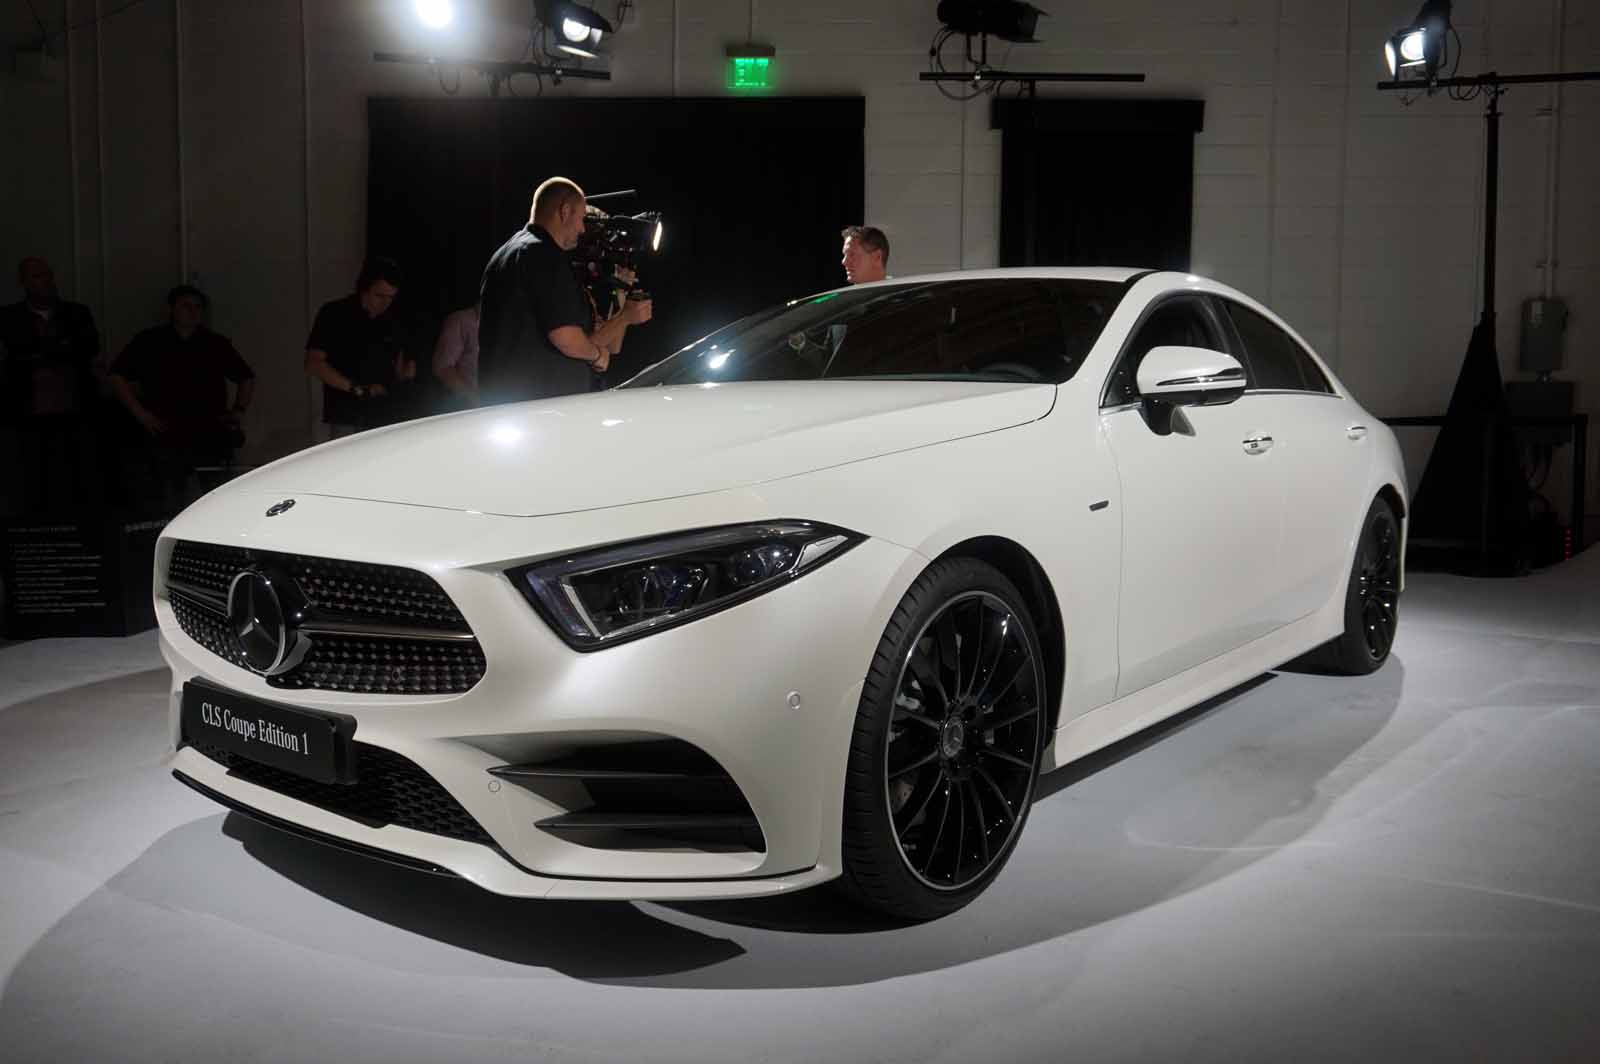 2019 mercedes cls debuts with high tech new powertrain news. Black Bedroom Furniture Sets. Home Design Ideas